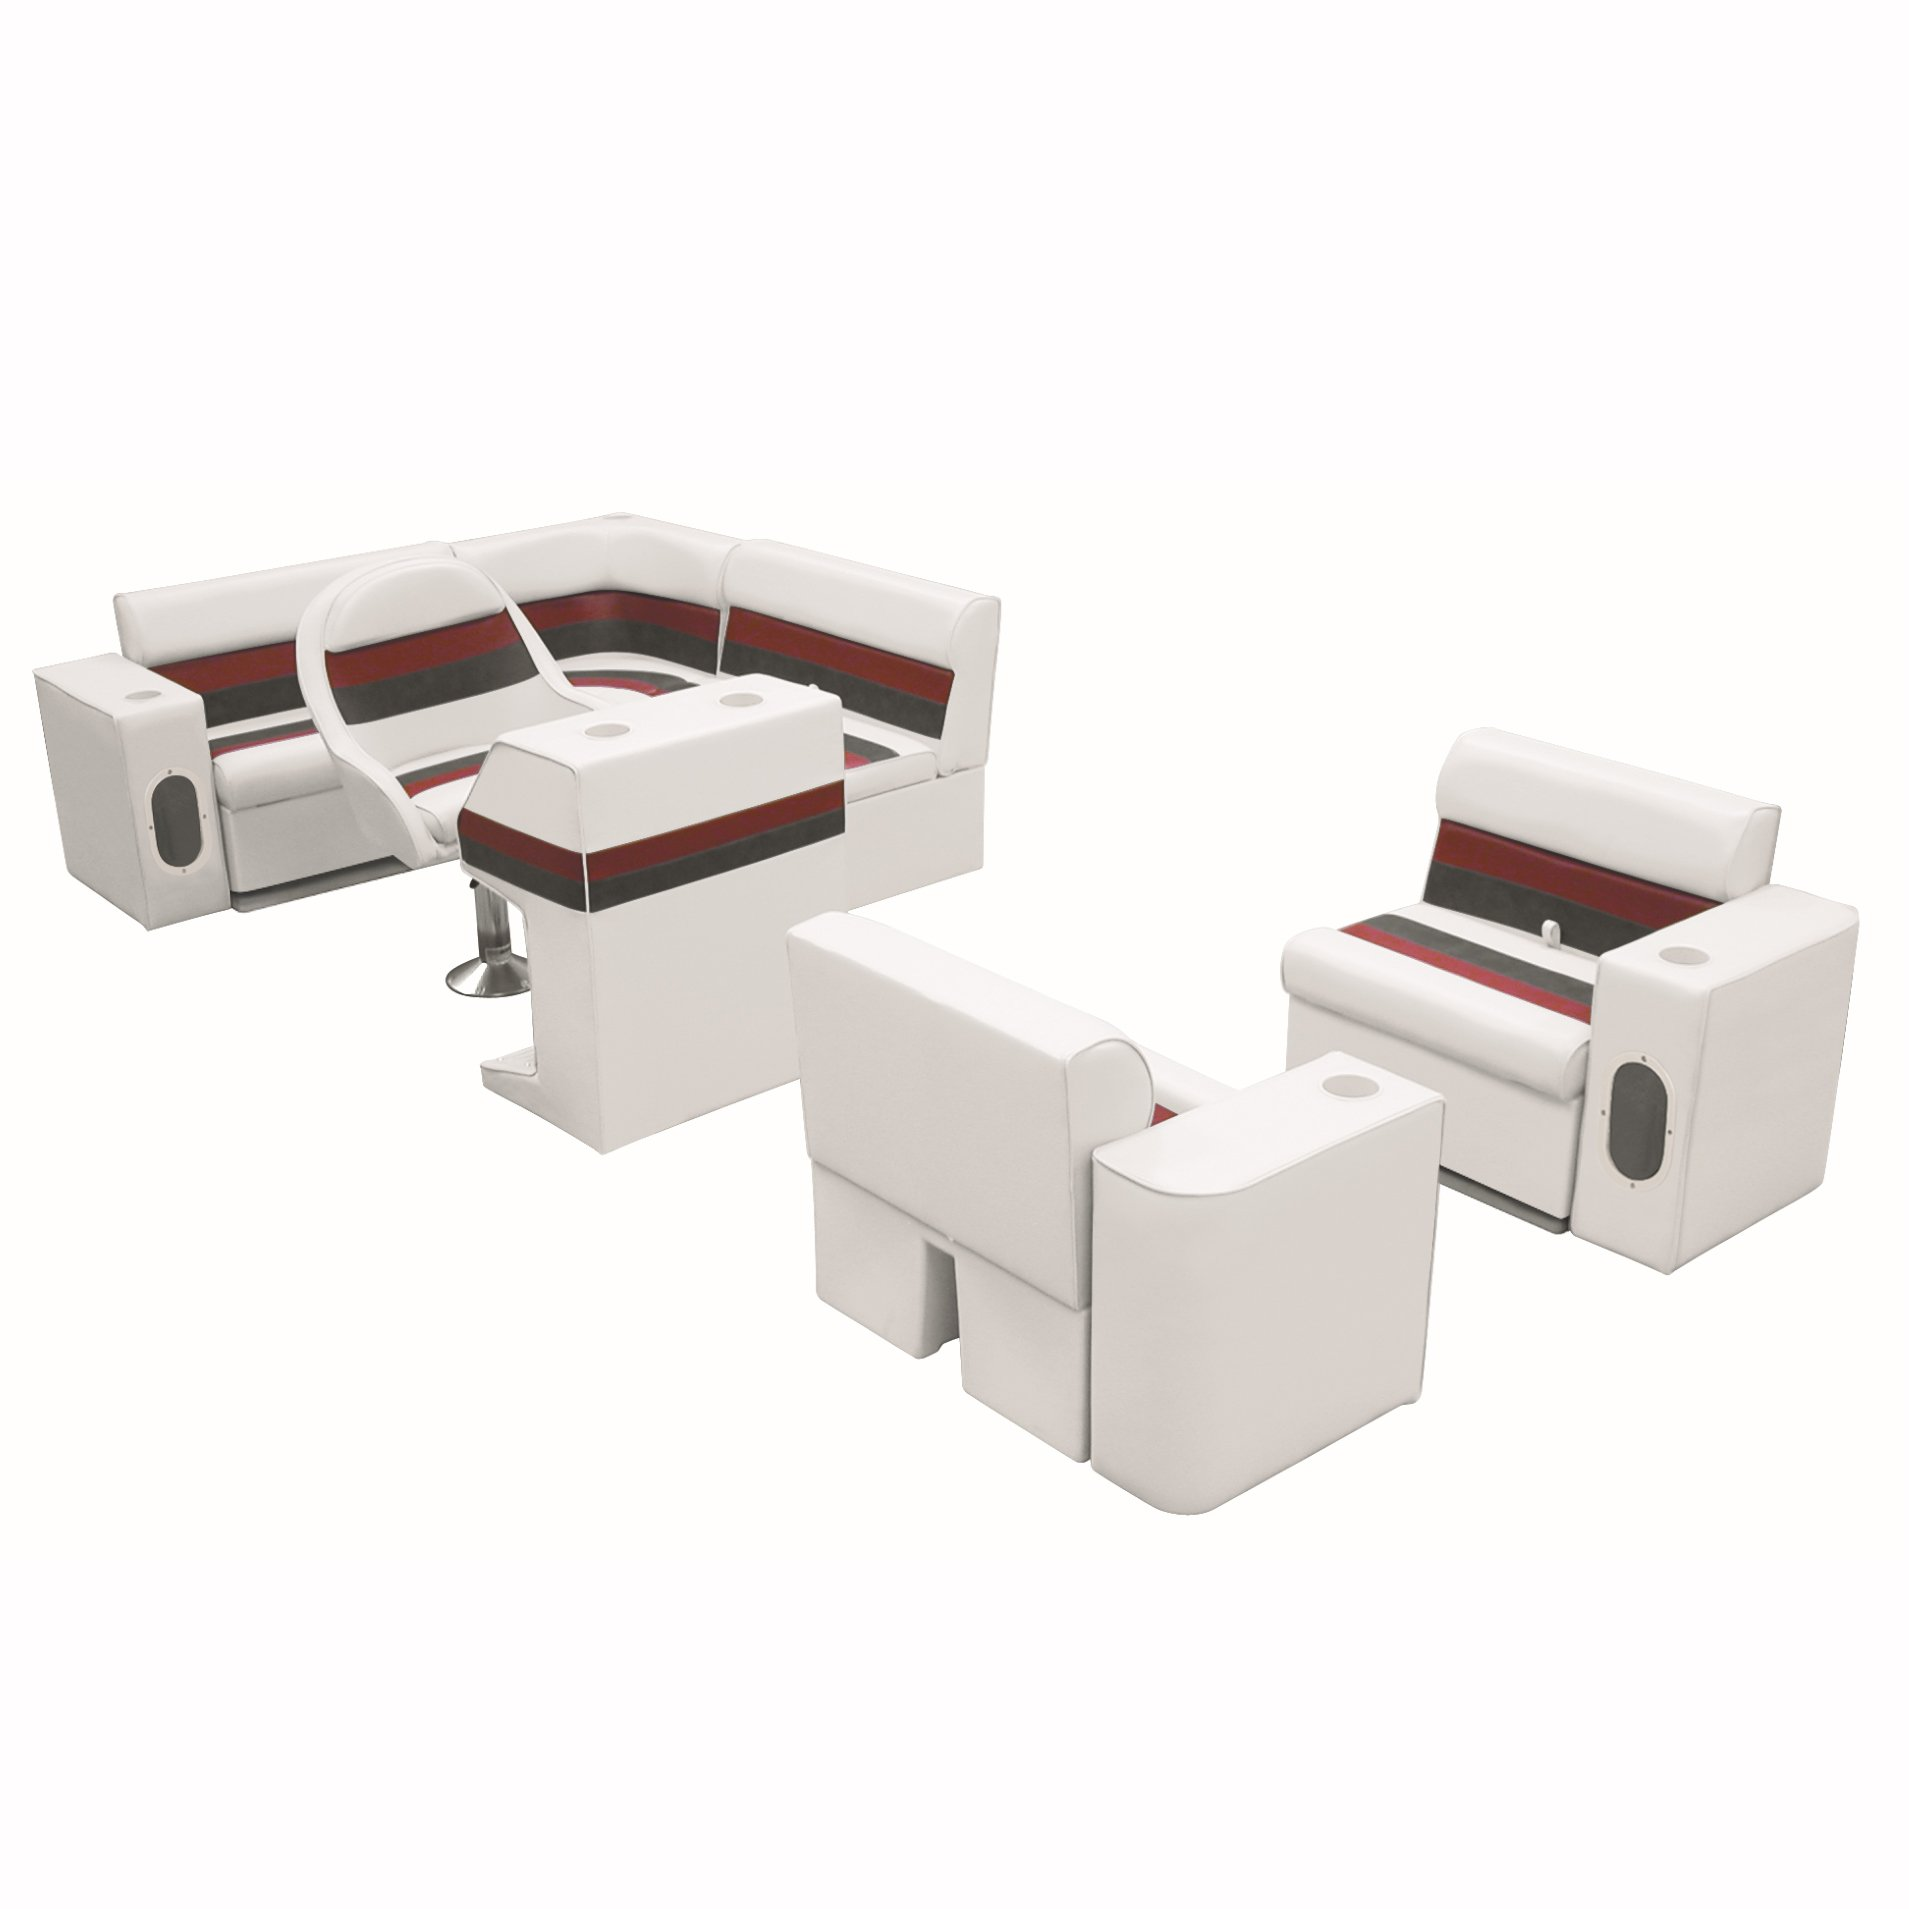 Deluxe Pontoon Furniture w/Toe Kick Base, Group 6 Package, White/Red/Charcoal